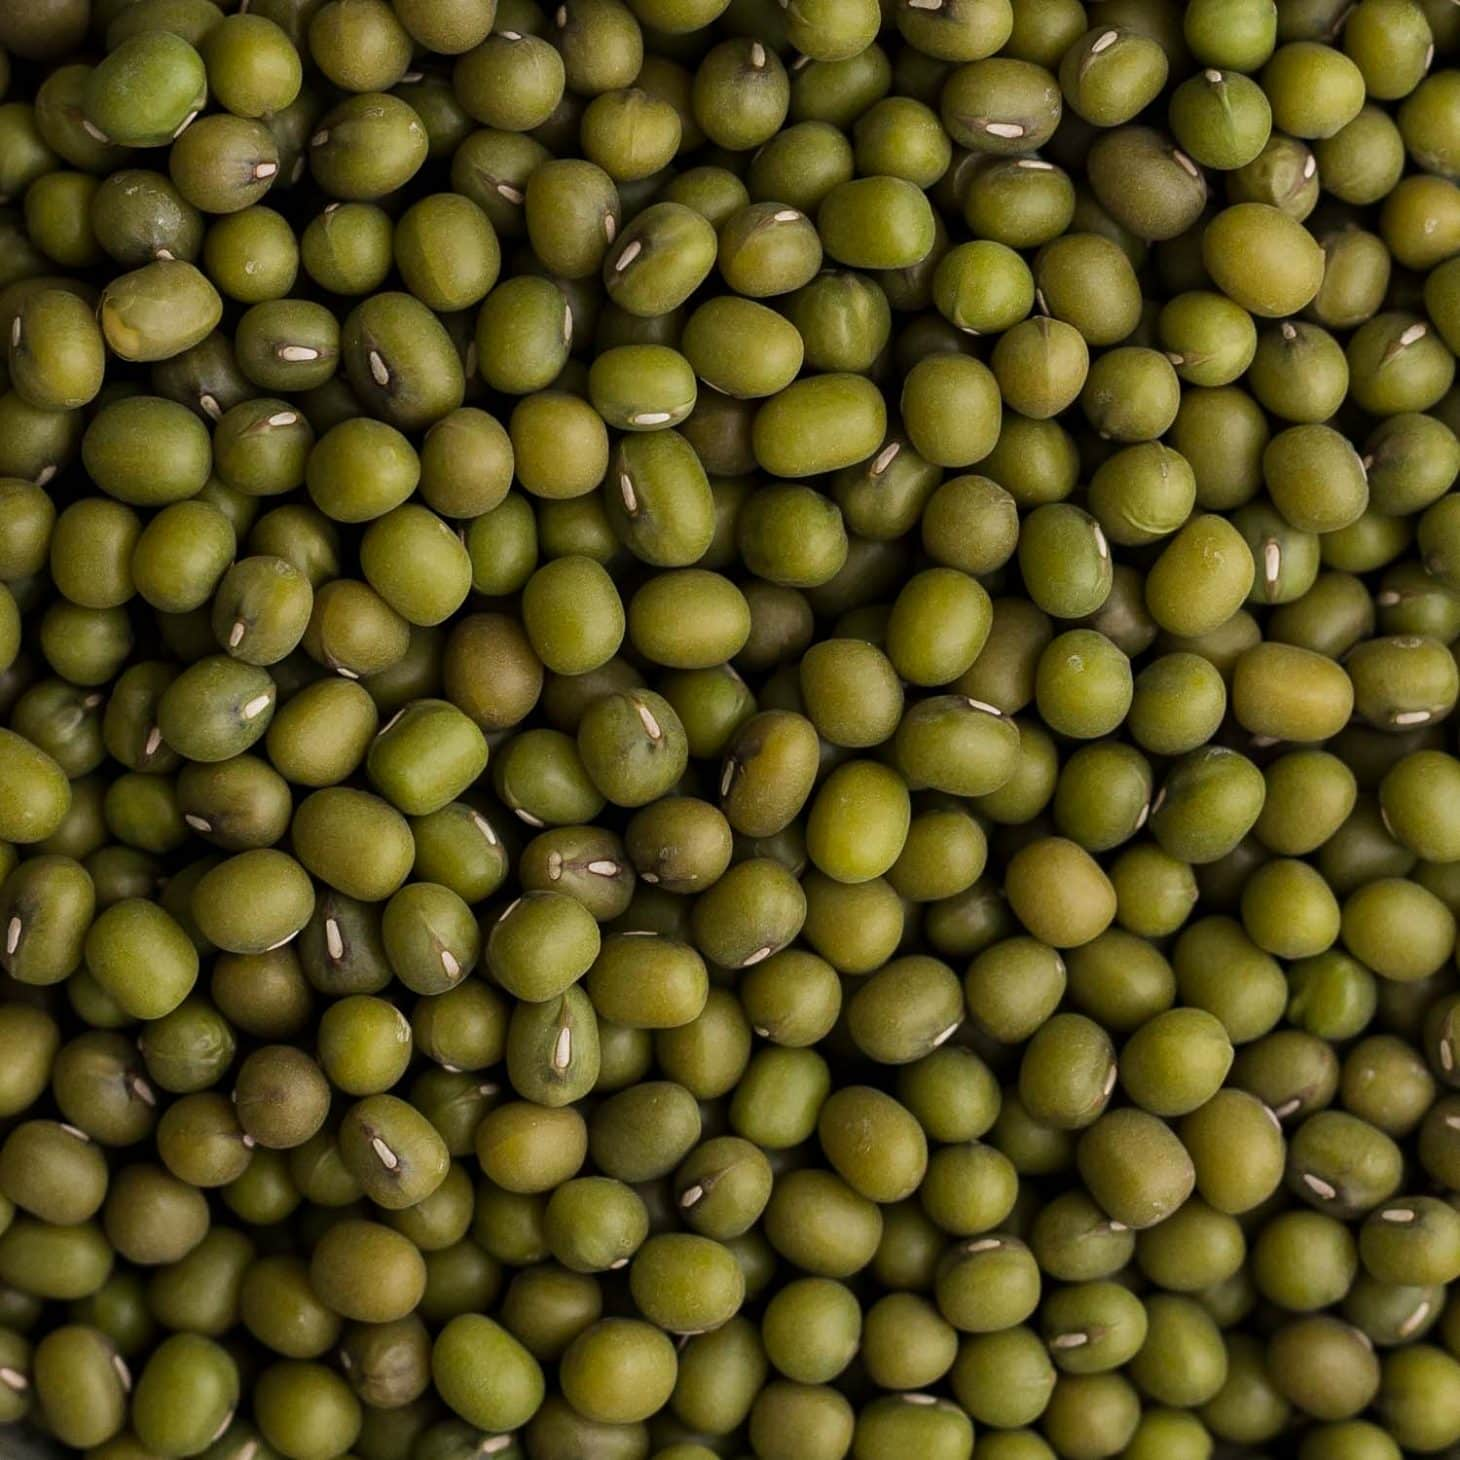 mung beans Mung beans are a delicious source of iron and fiber, and they can be cooked up in no time with minimal effort.